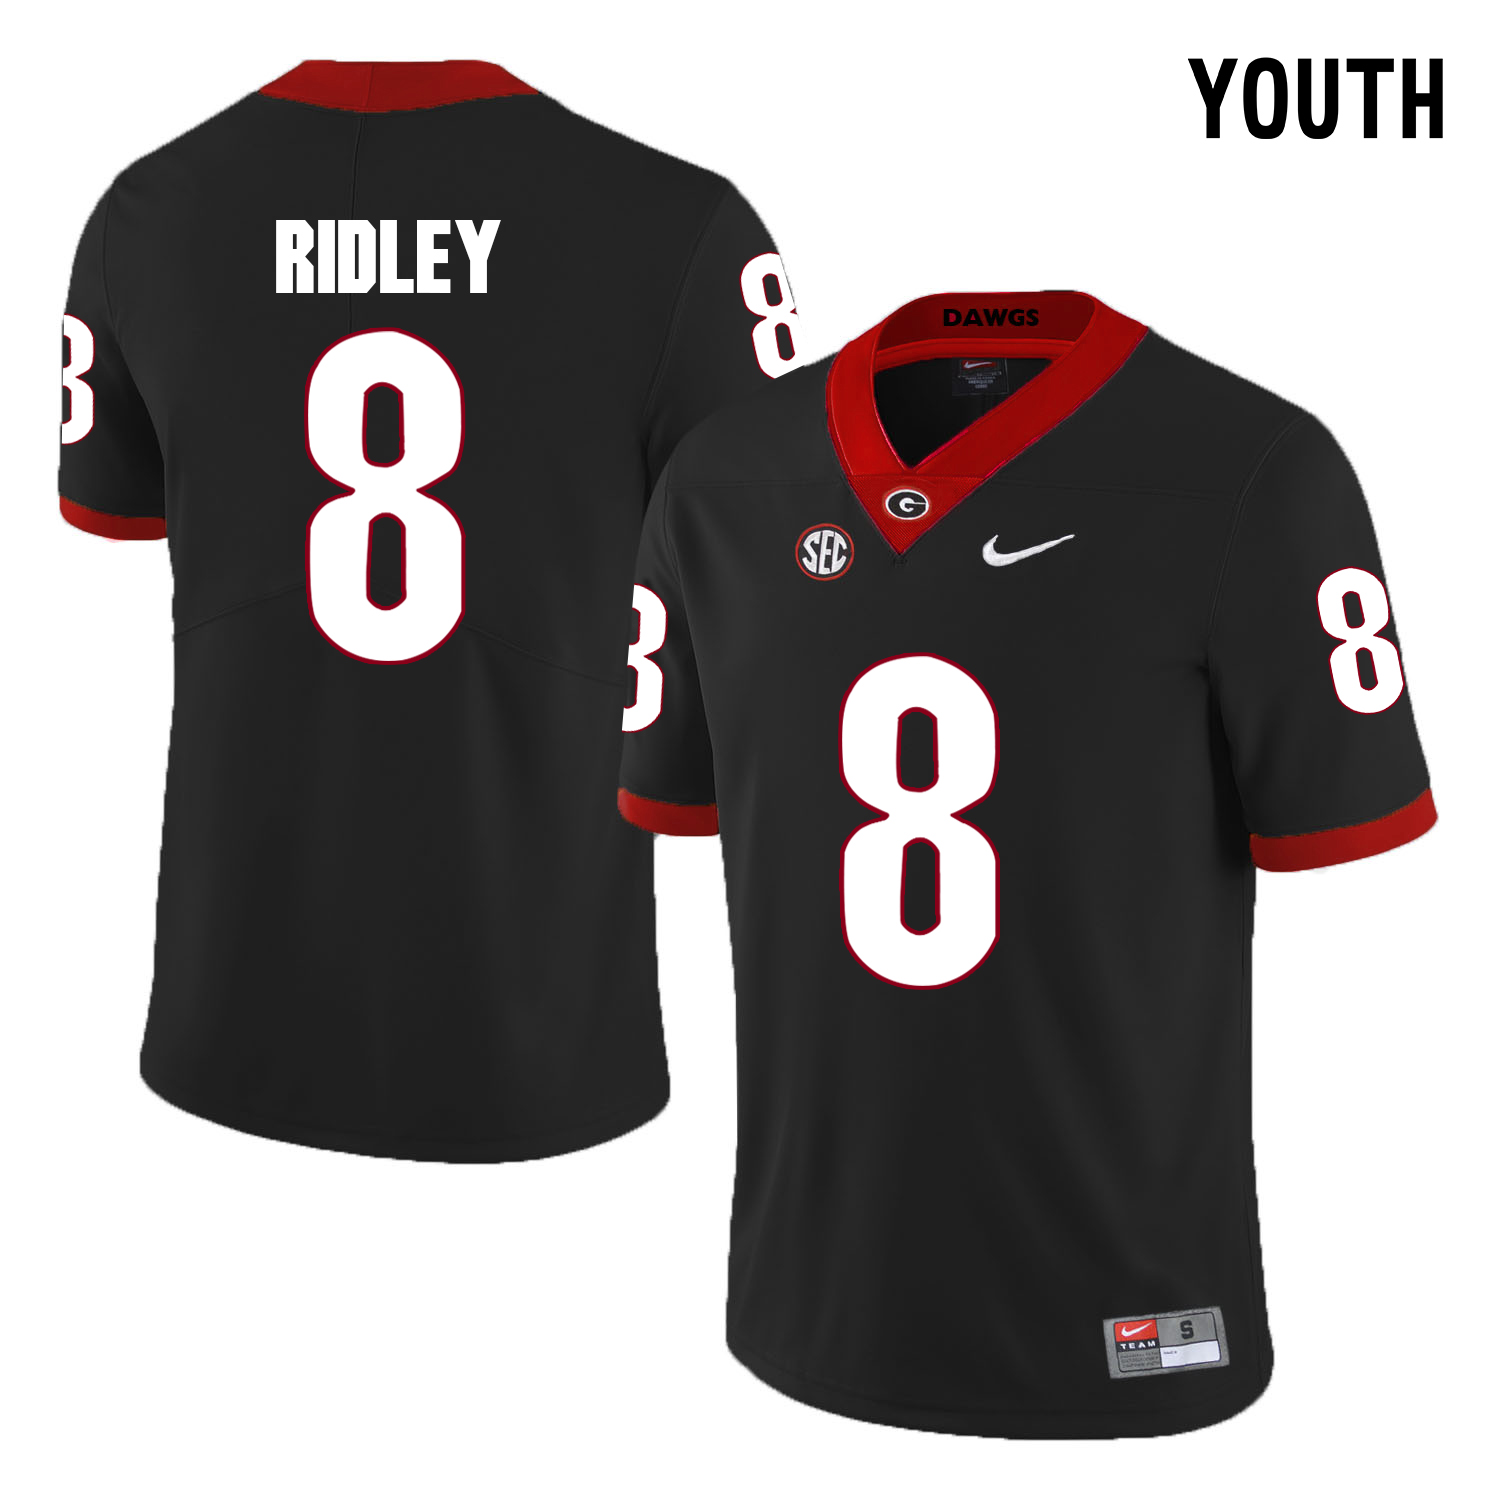 Georgia Bulldogs 8 Riley Ridley Black Youth College Football Jersey